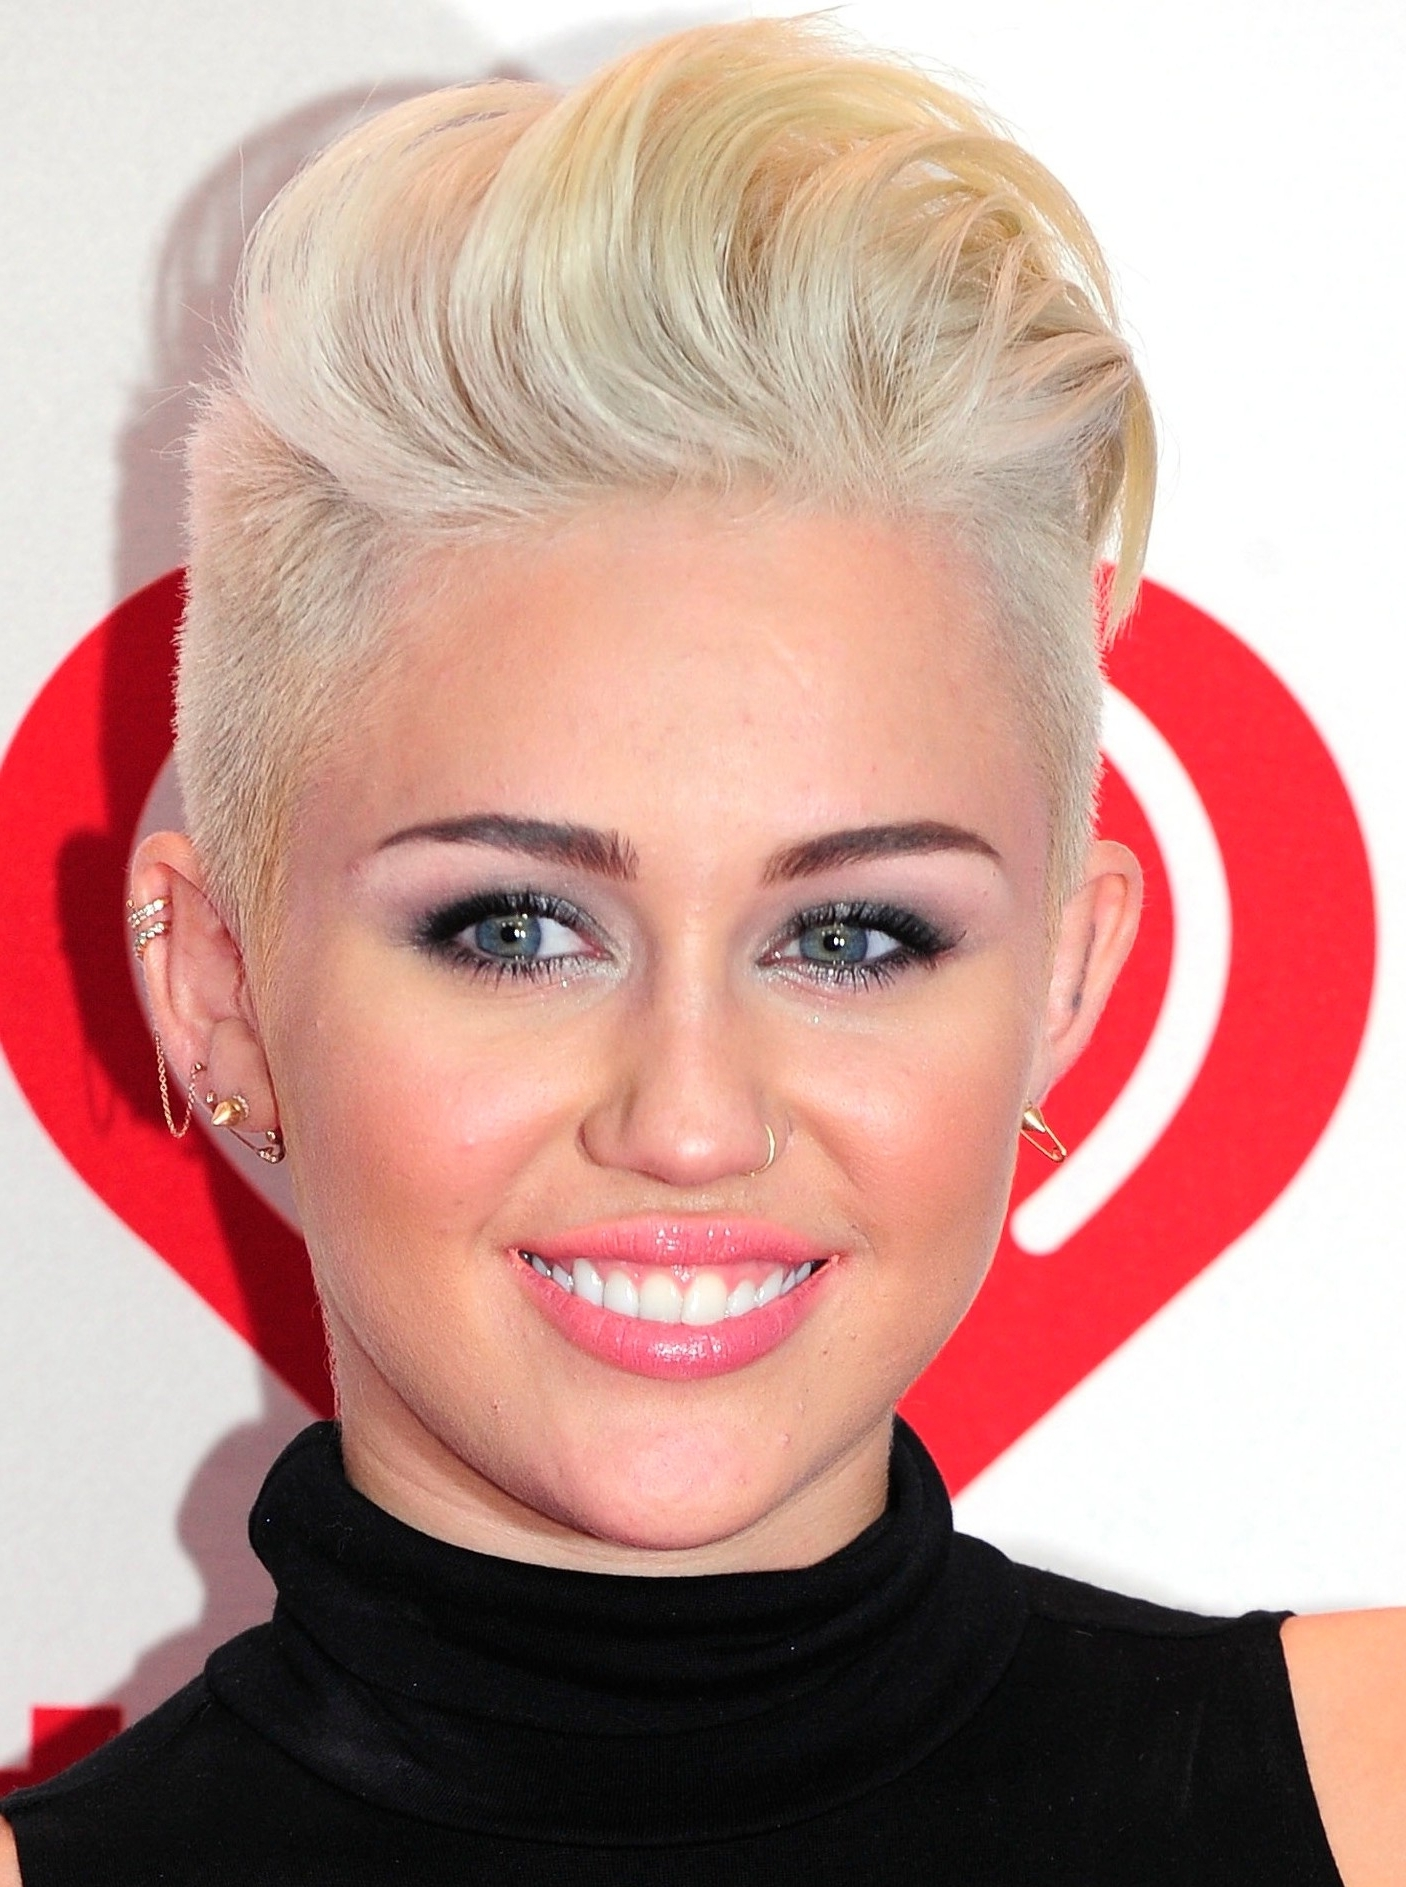 Miley Cyrus Short Hairstyle – Hairstyles, Easy Hairstyles For Girls For Most Current Miley Cyrus Pixie Hairstyles (View 10 of 15)